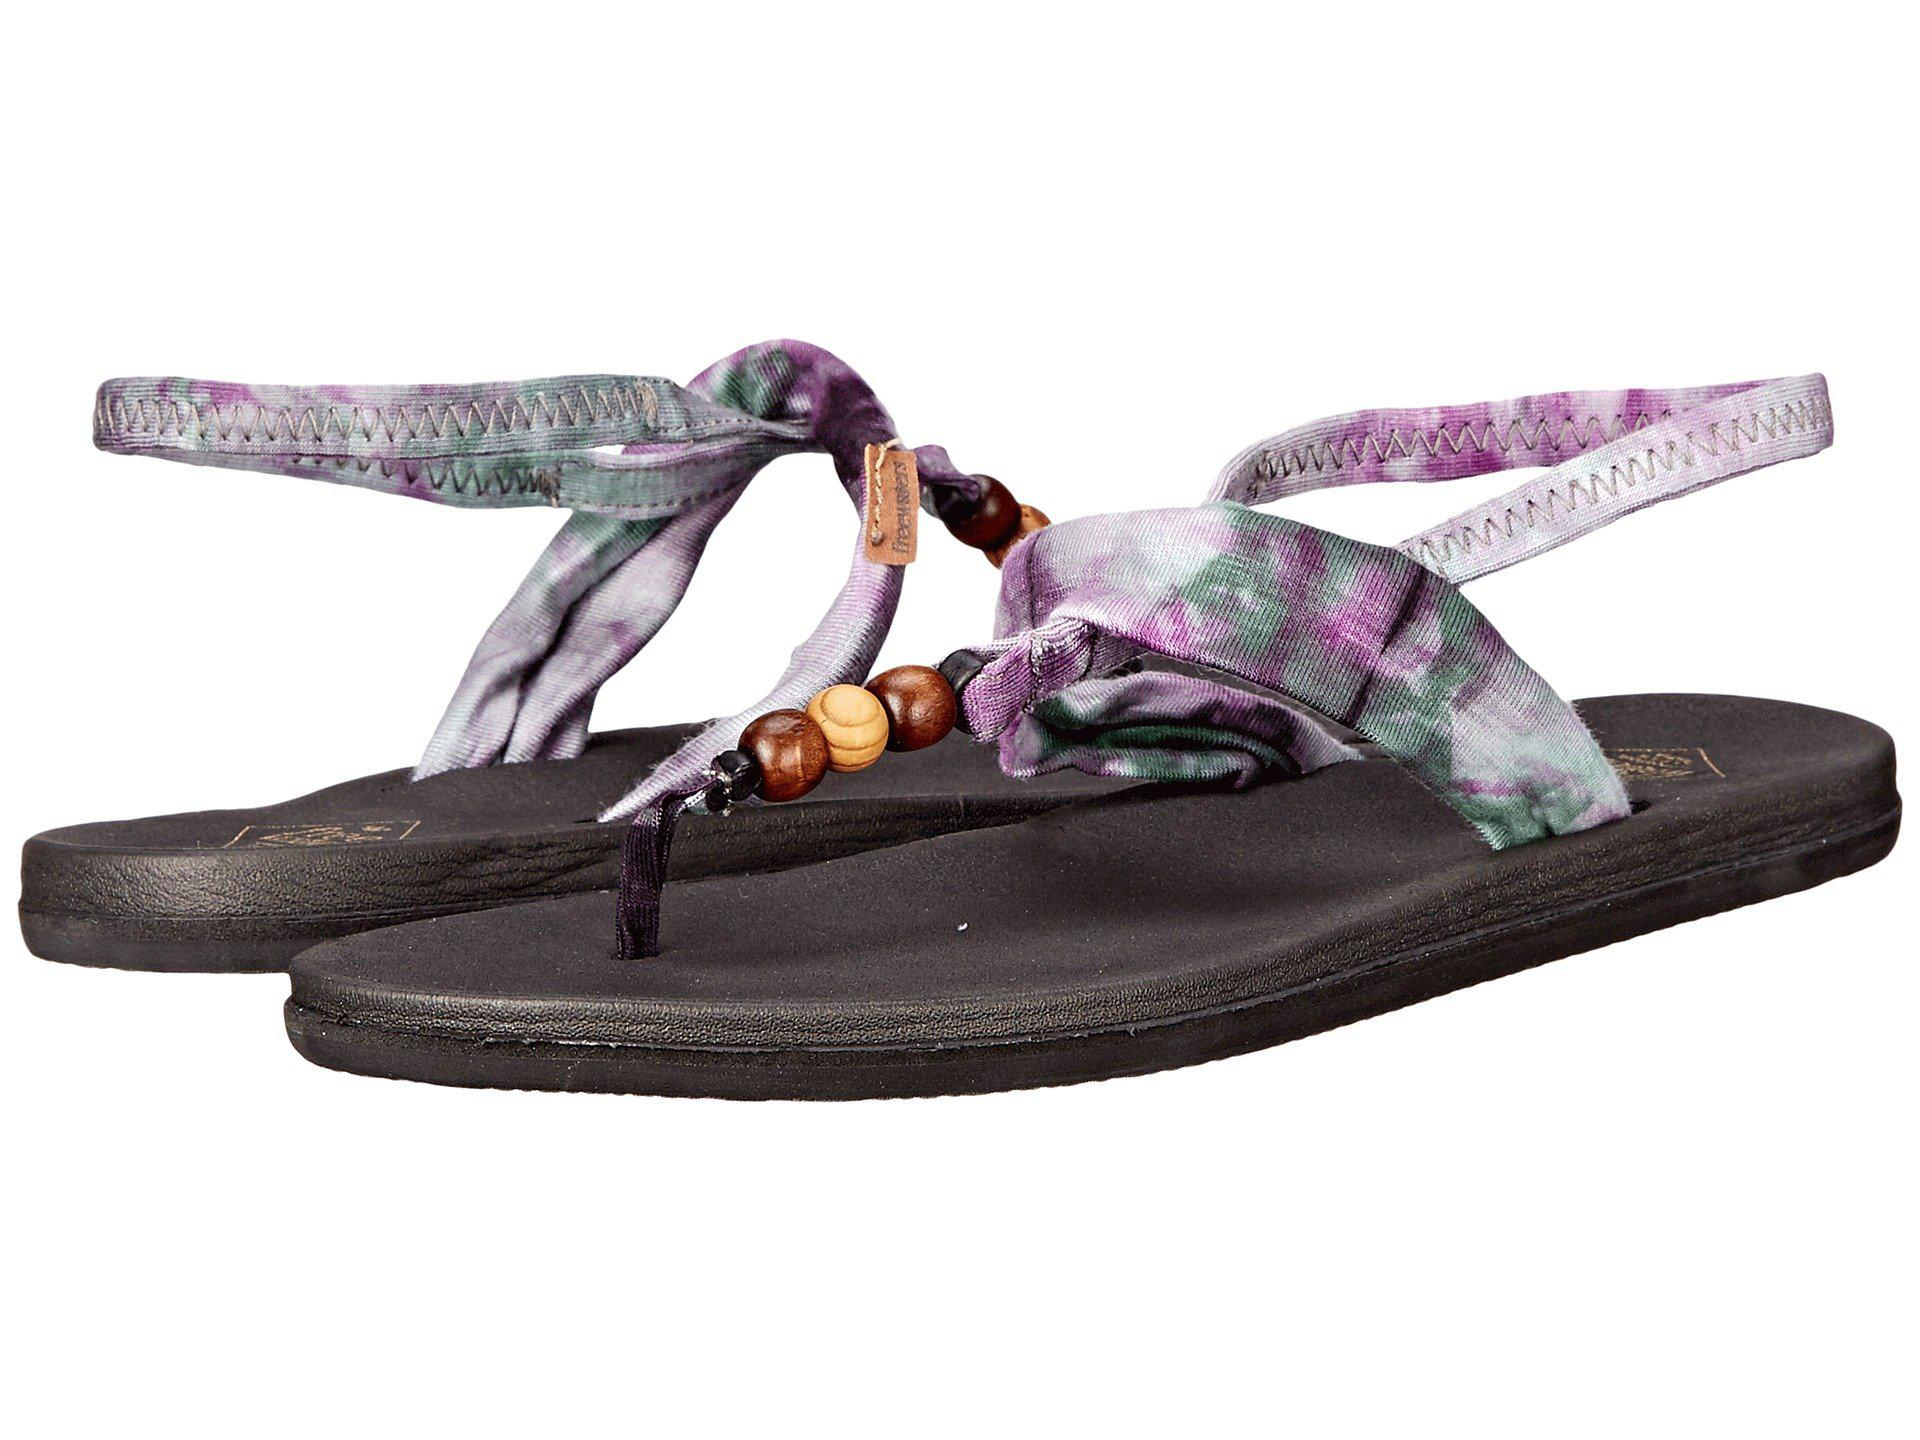 bf04ce5287c Freewaters. Women s Tessa Print